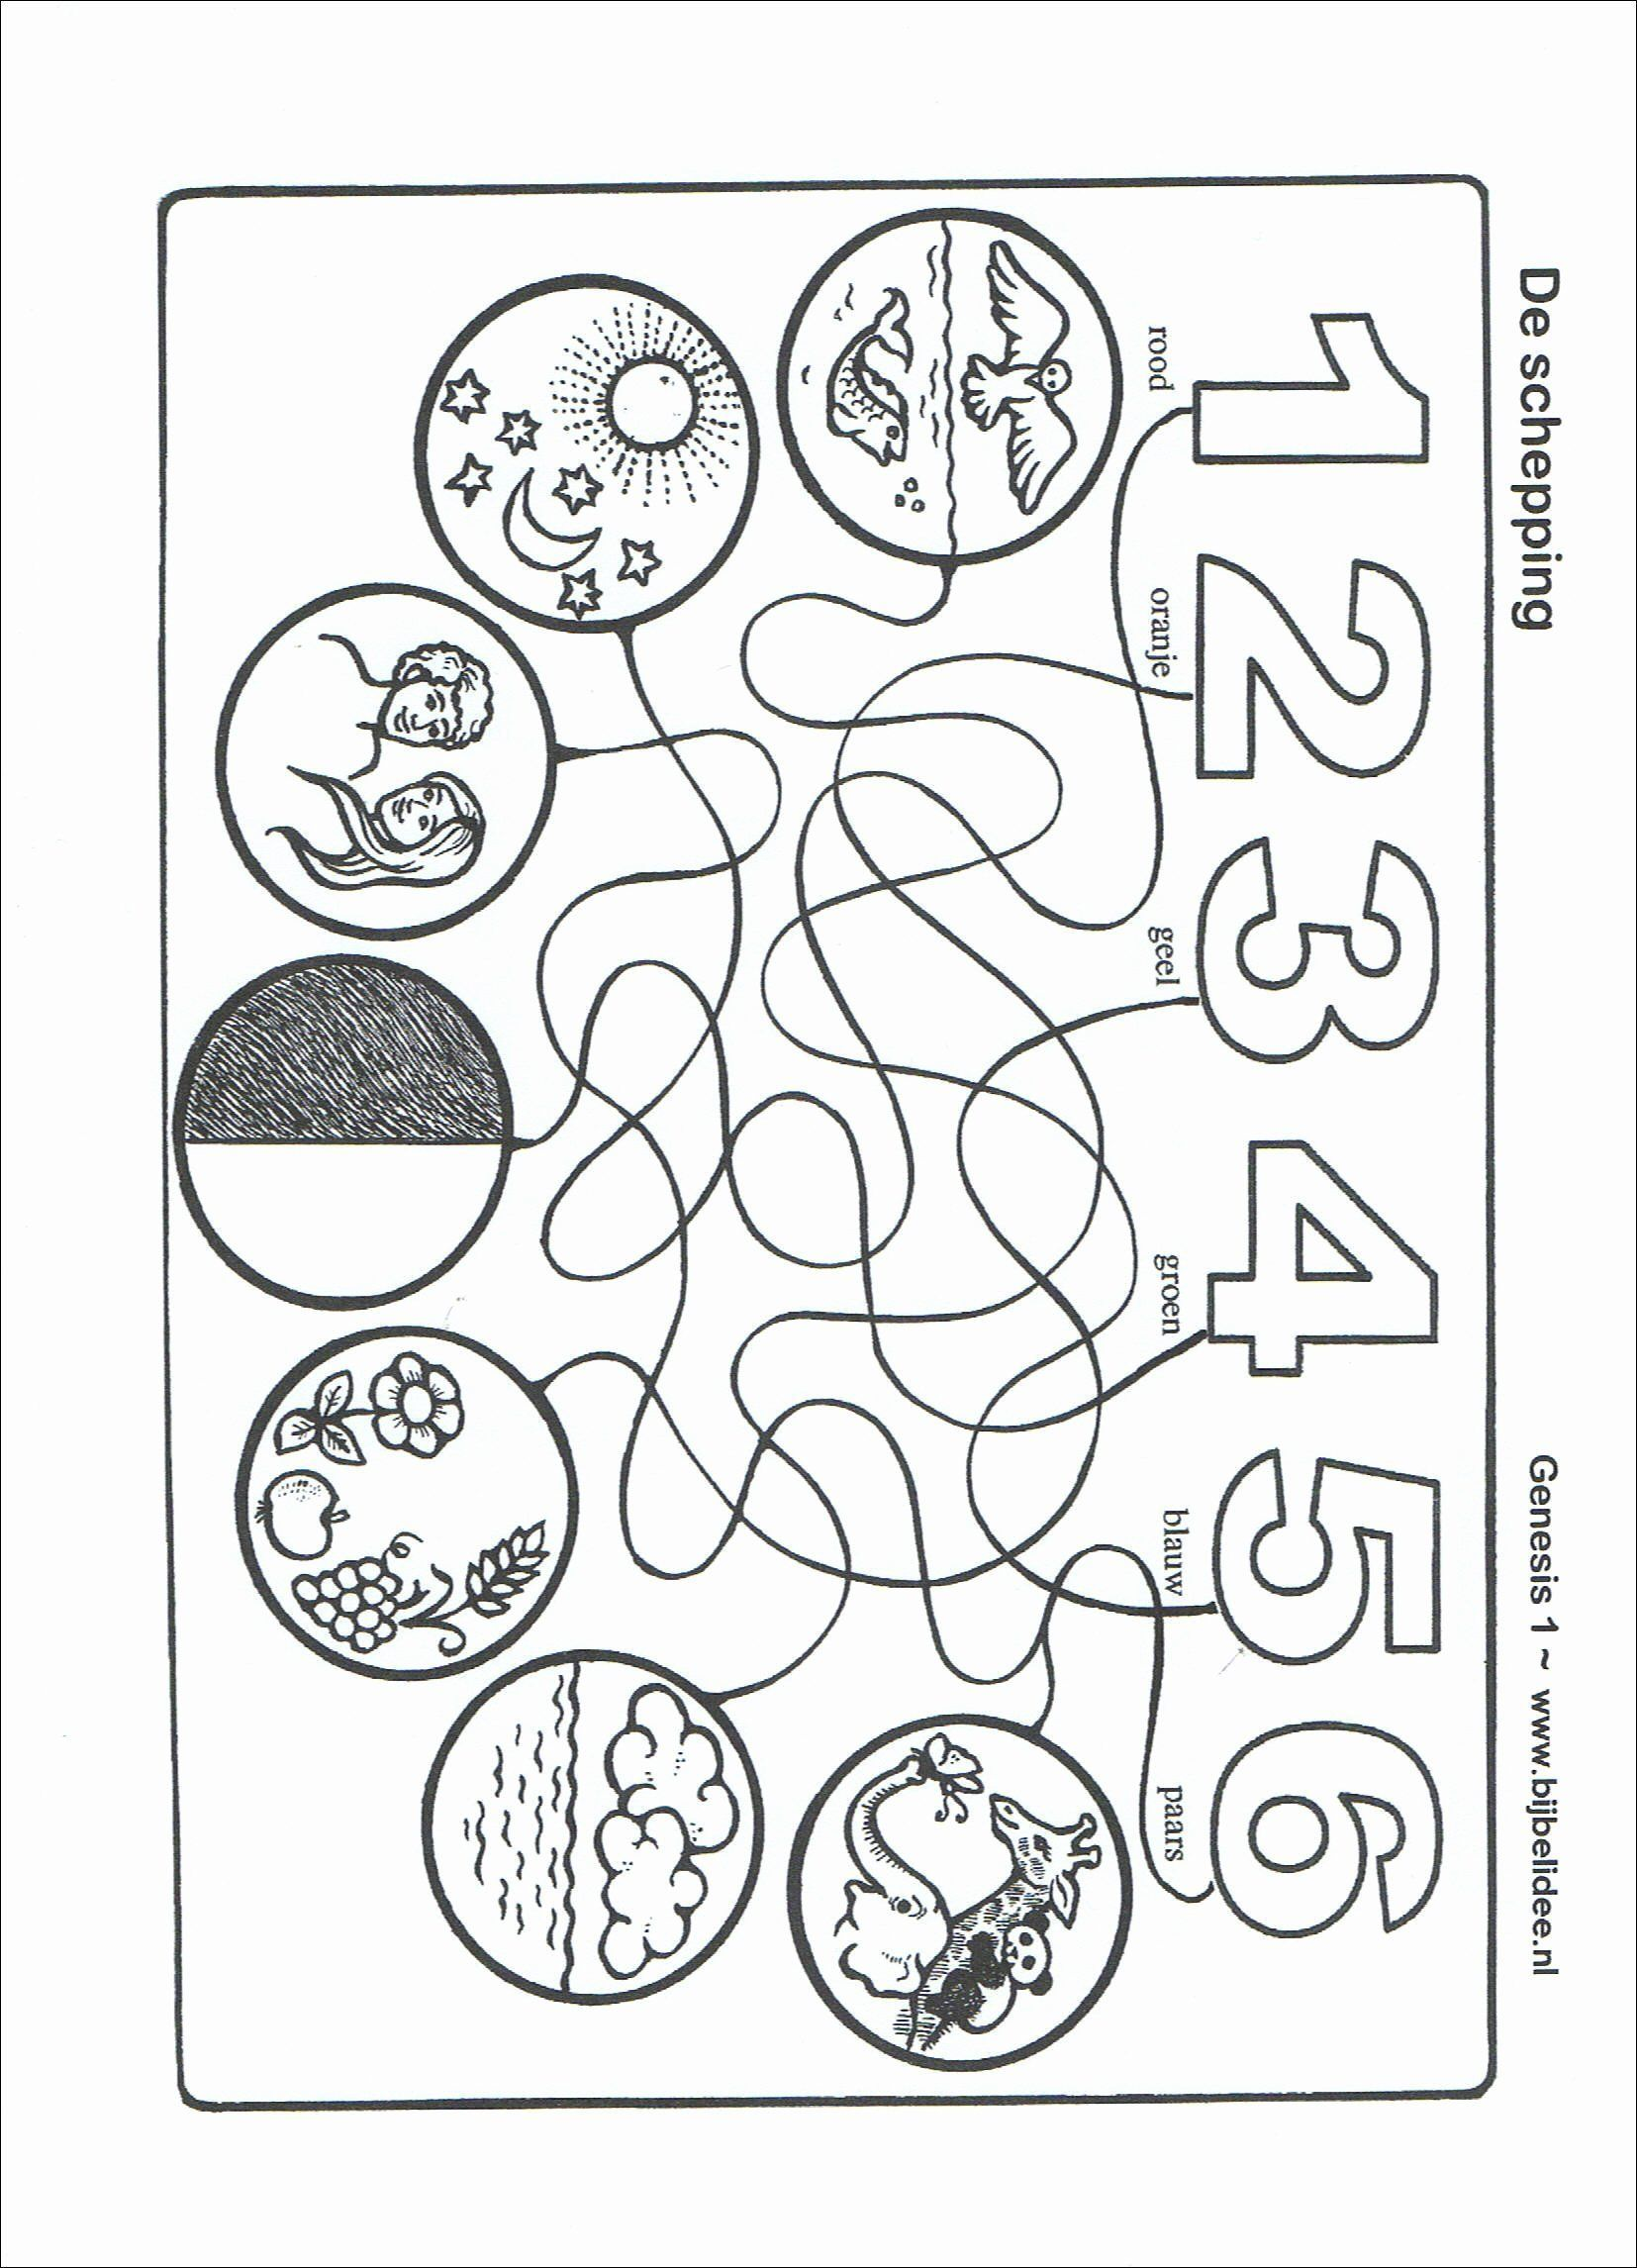 49+ Free printable bible coloring pages creation inspirations